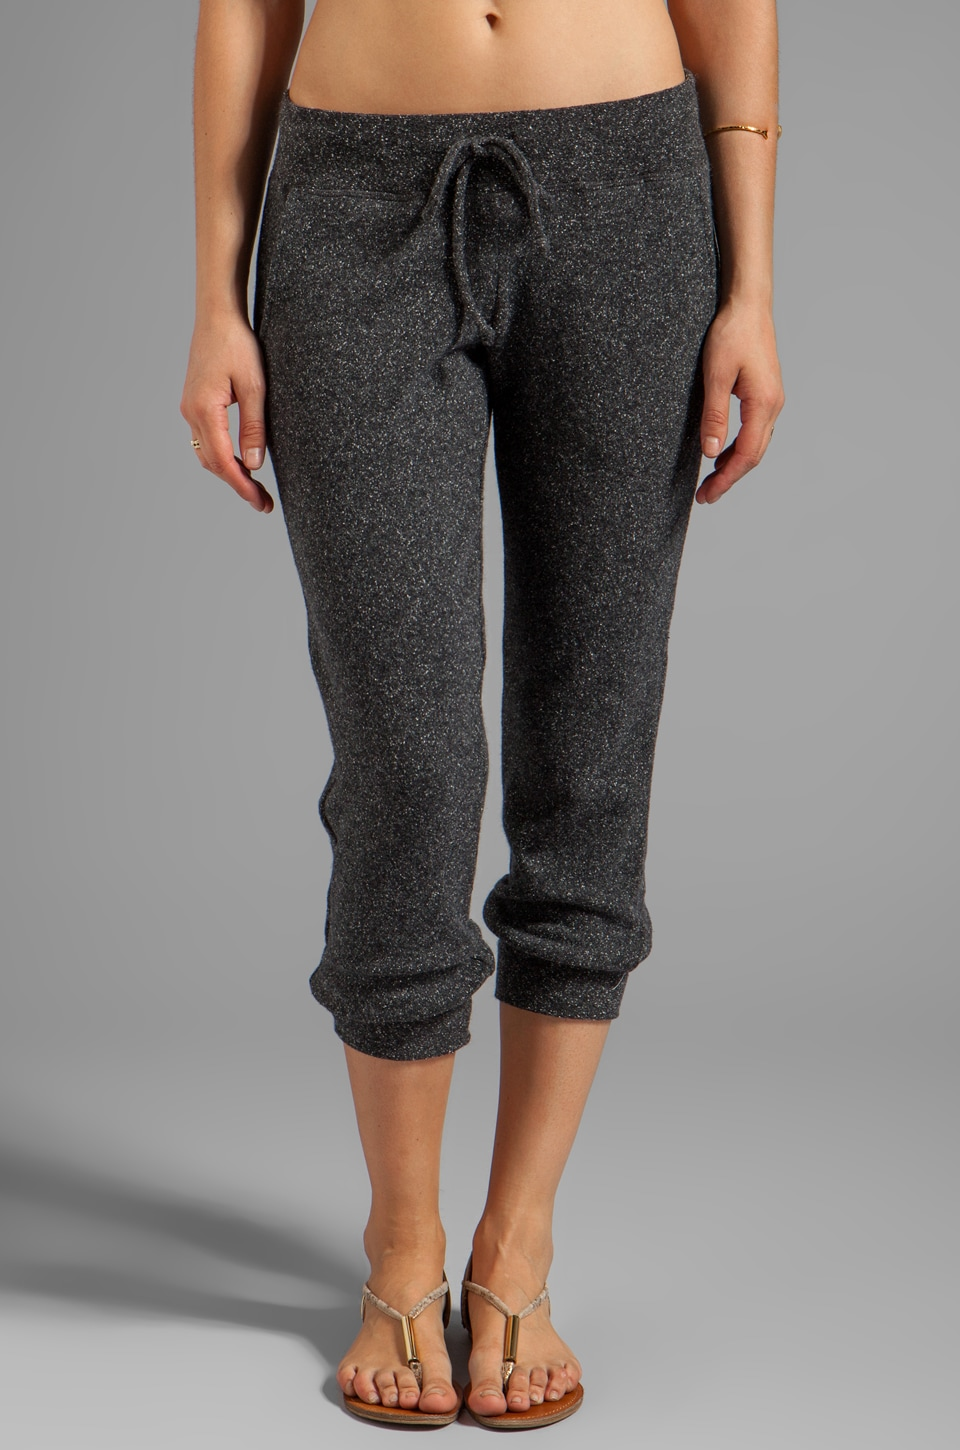 Graham & Spencer Brushed Sweatpants in Charcoal